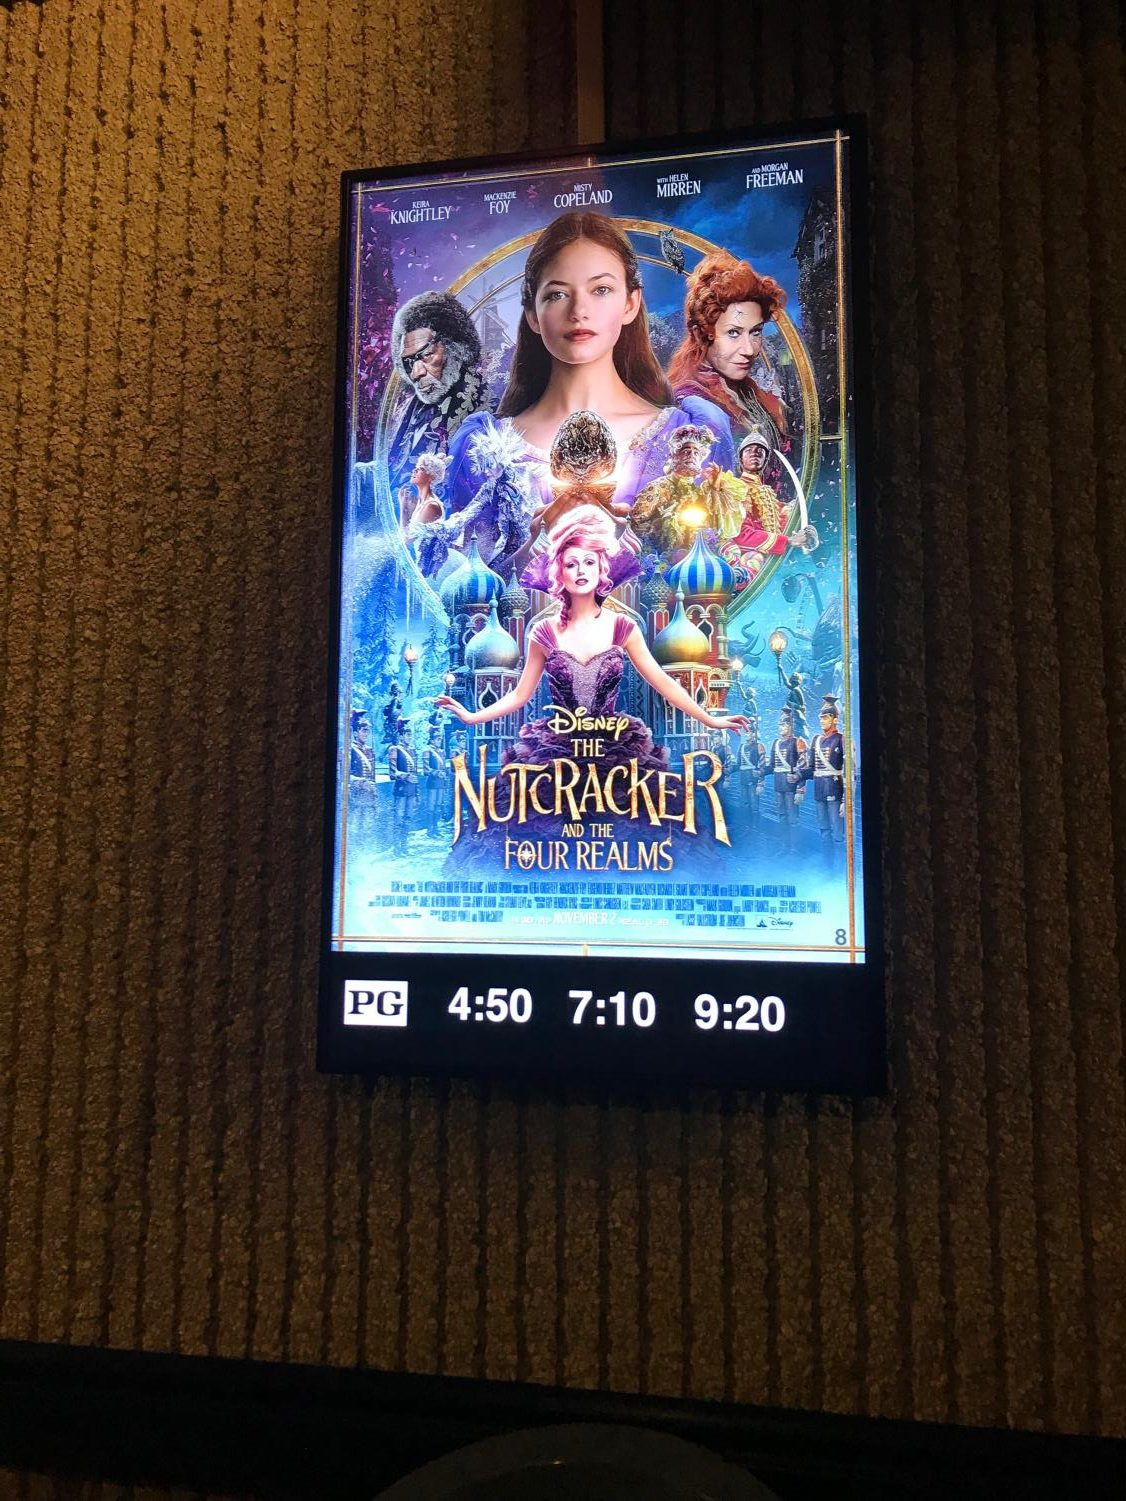 The Nutcracker is shown many times throughout the day at Legacy 9.